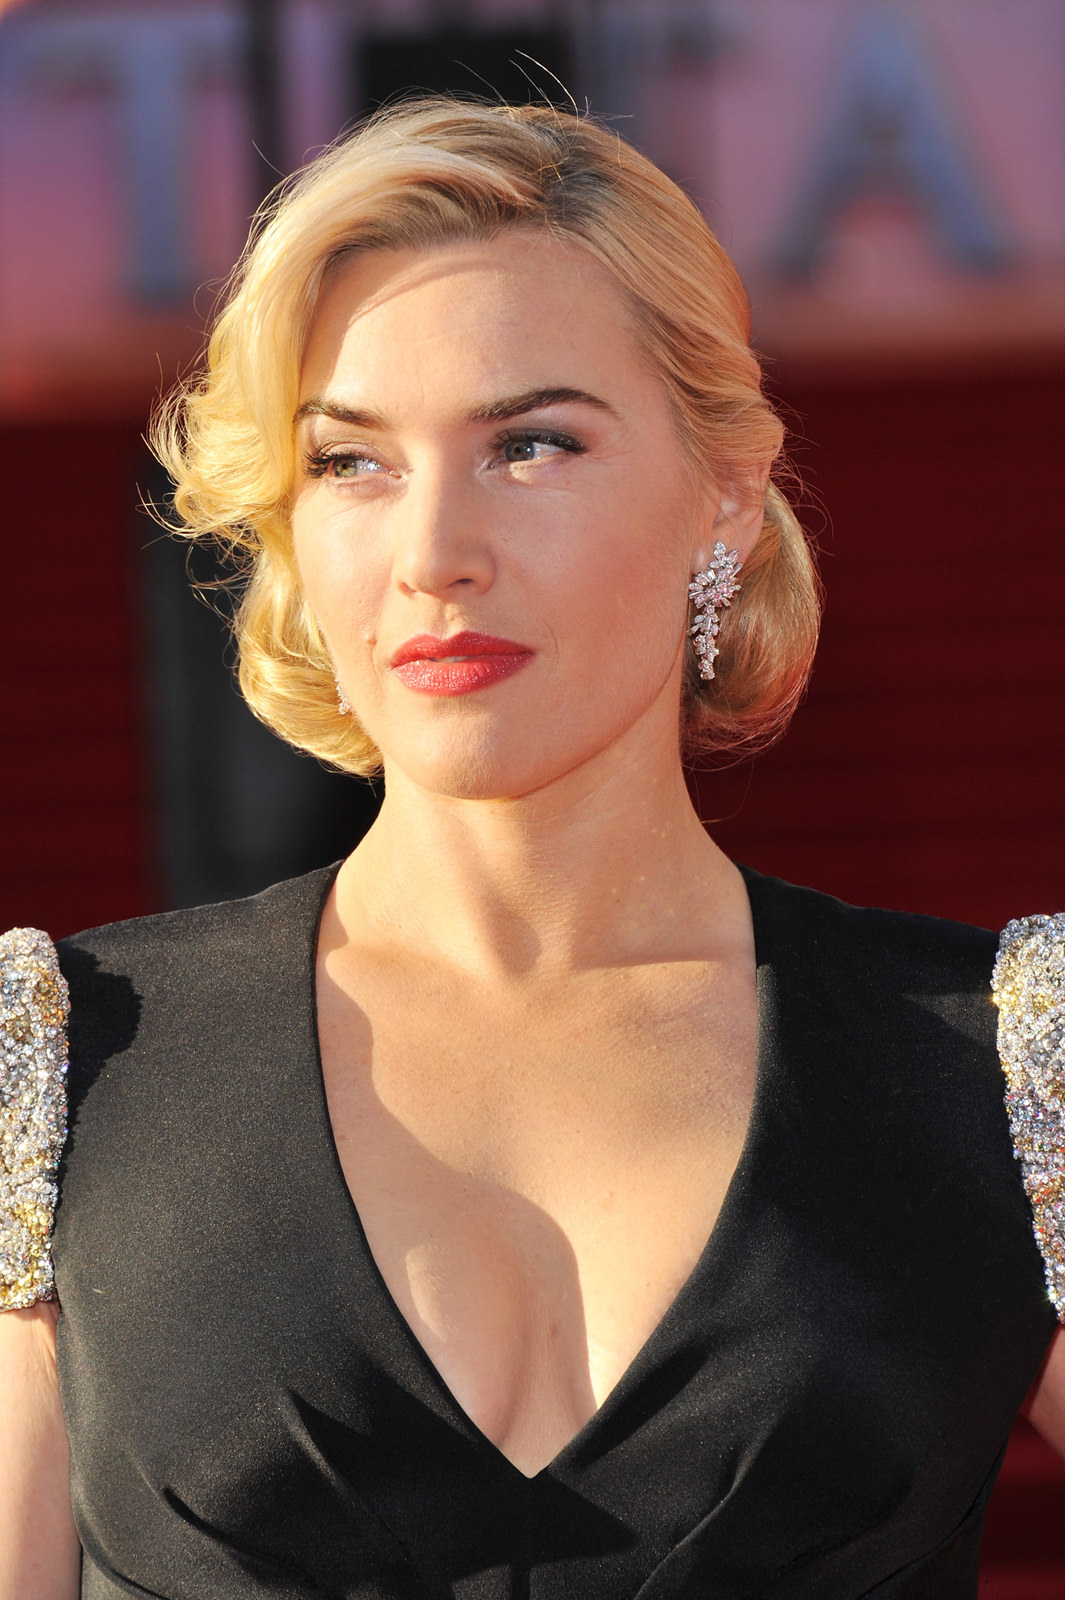 Kate Winslet Photo Gallery